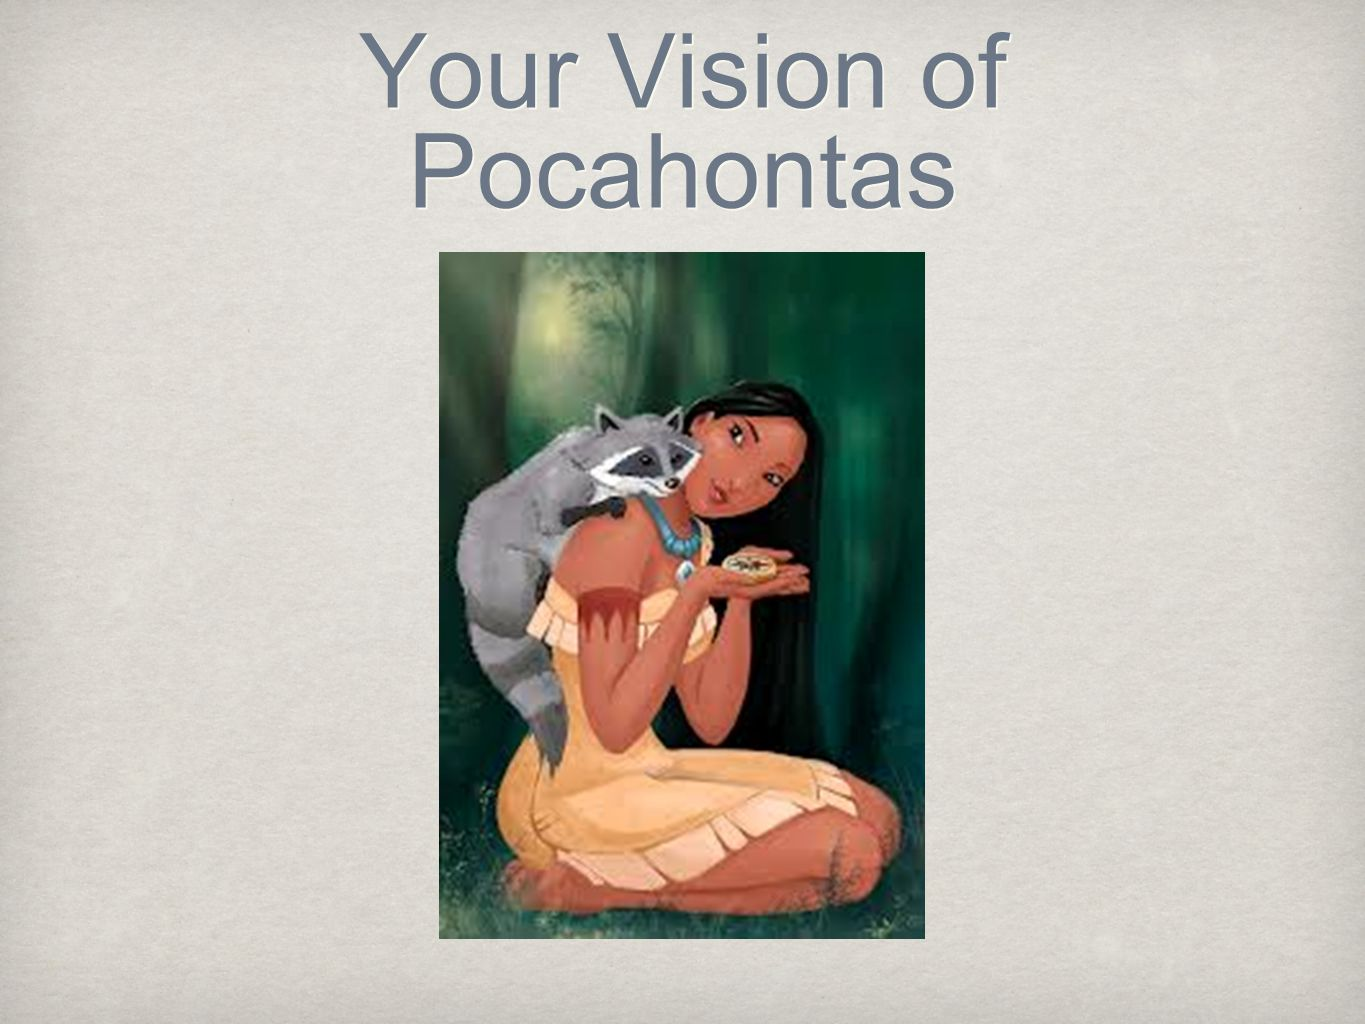 Your Vision of Pocahontas